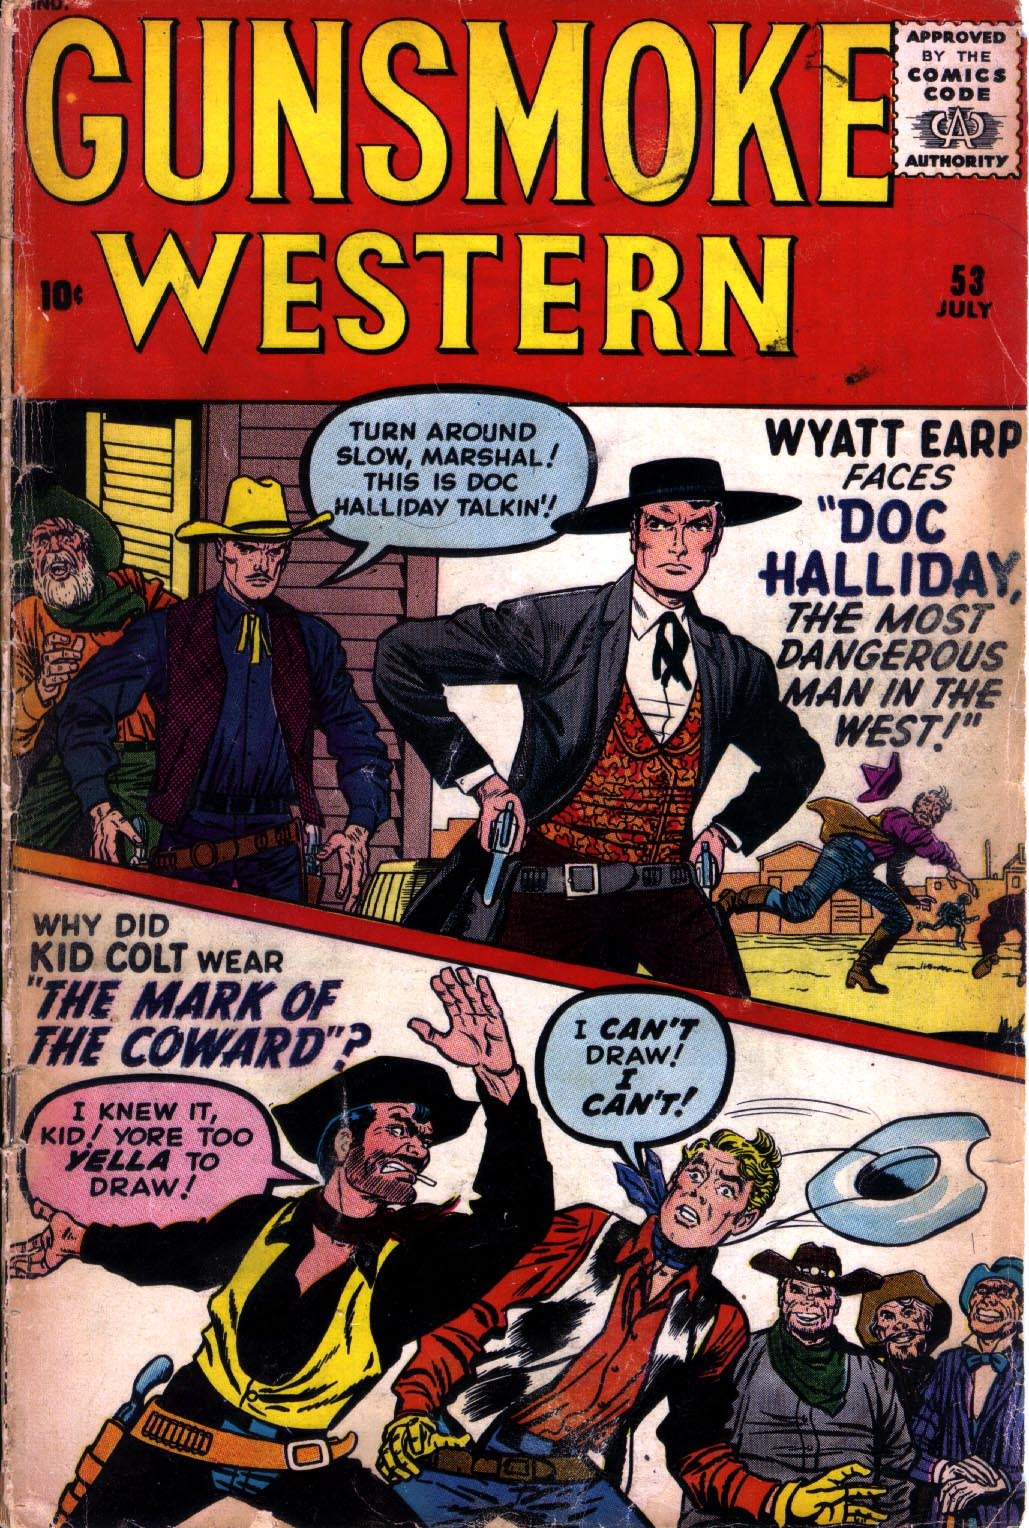 Gunsmoke Western issue 53 - Page 1